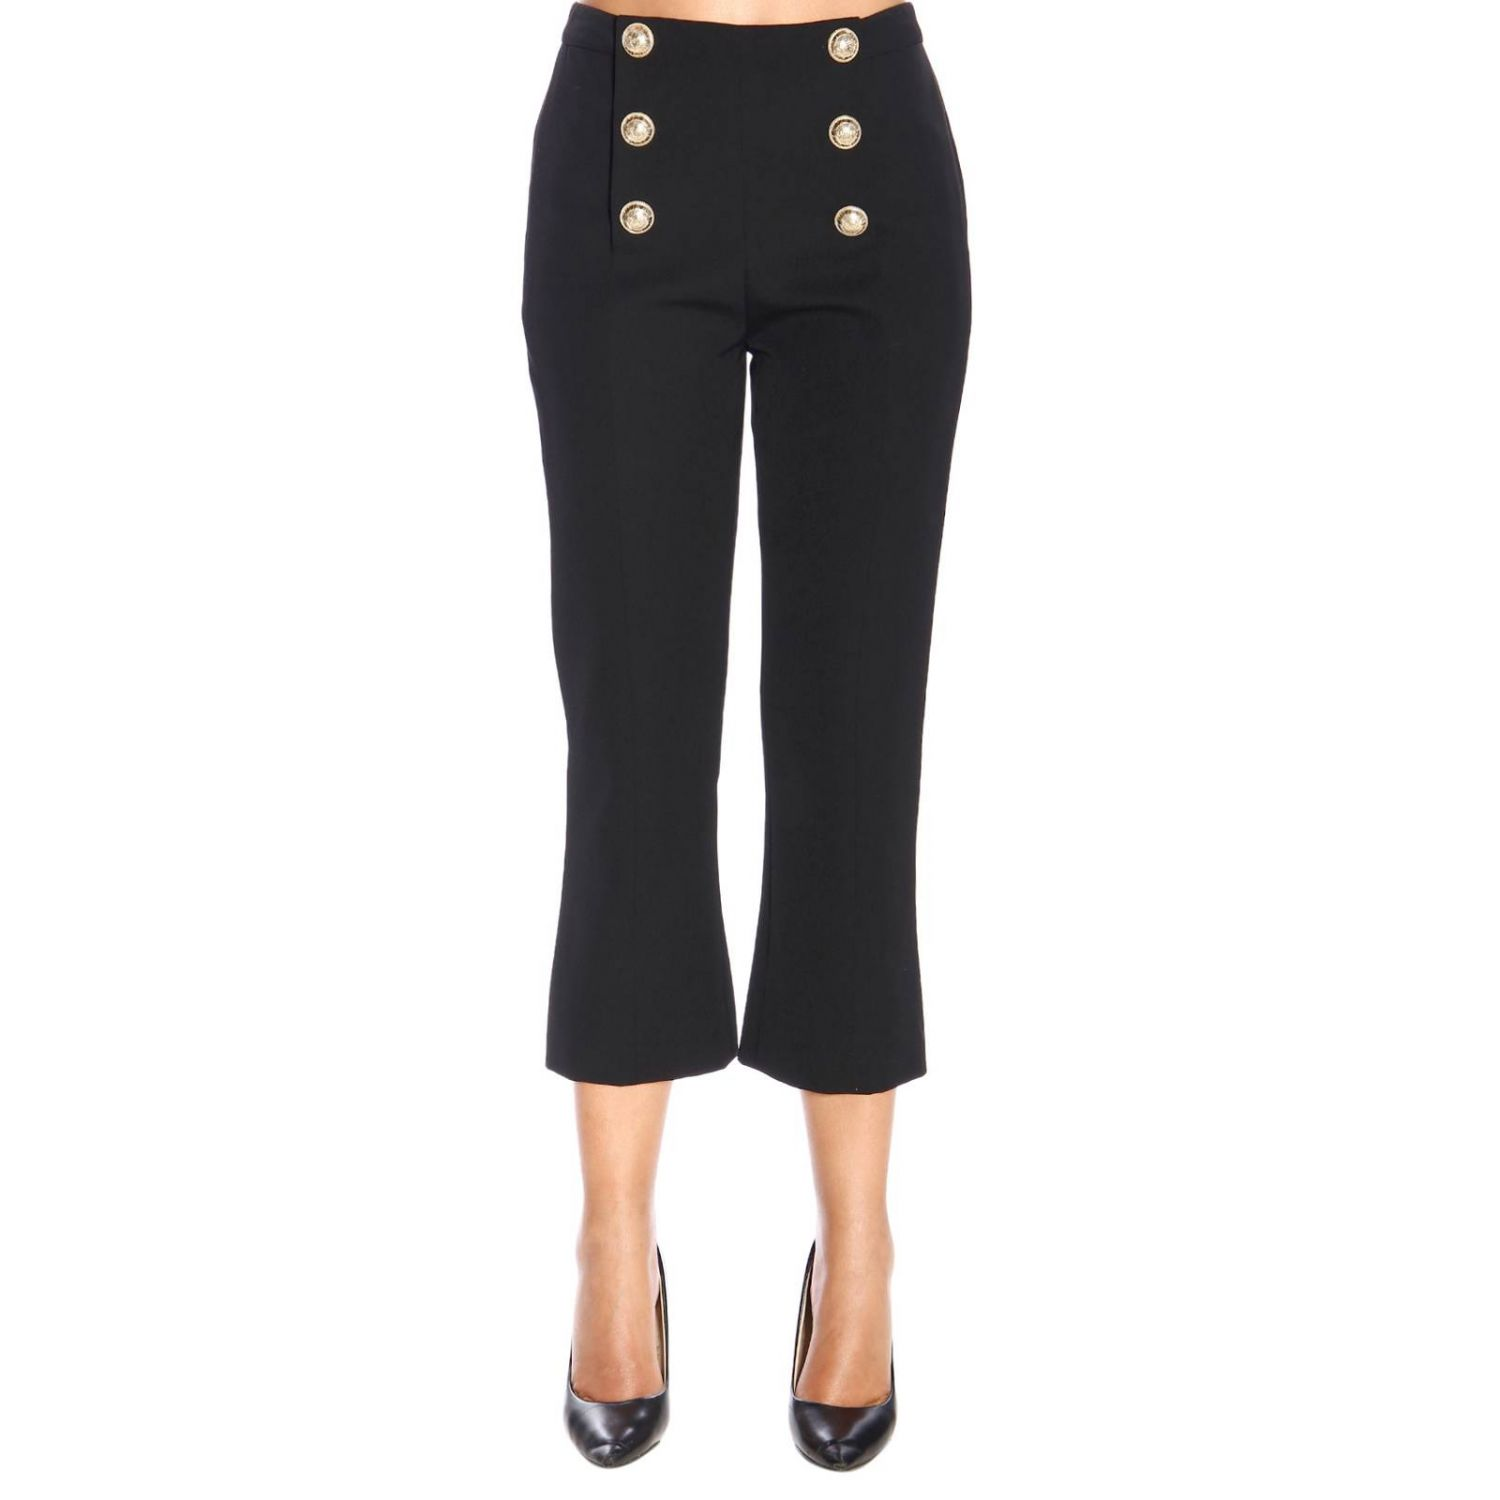 Trousers Balmain: Balmain wool trumpet trousers with jewel buttons black 1